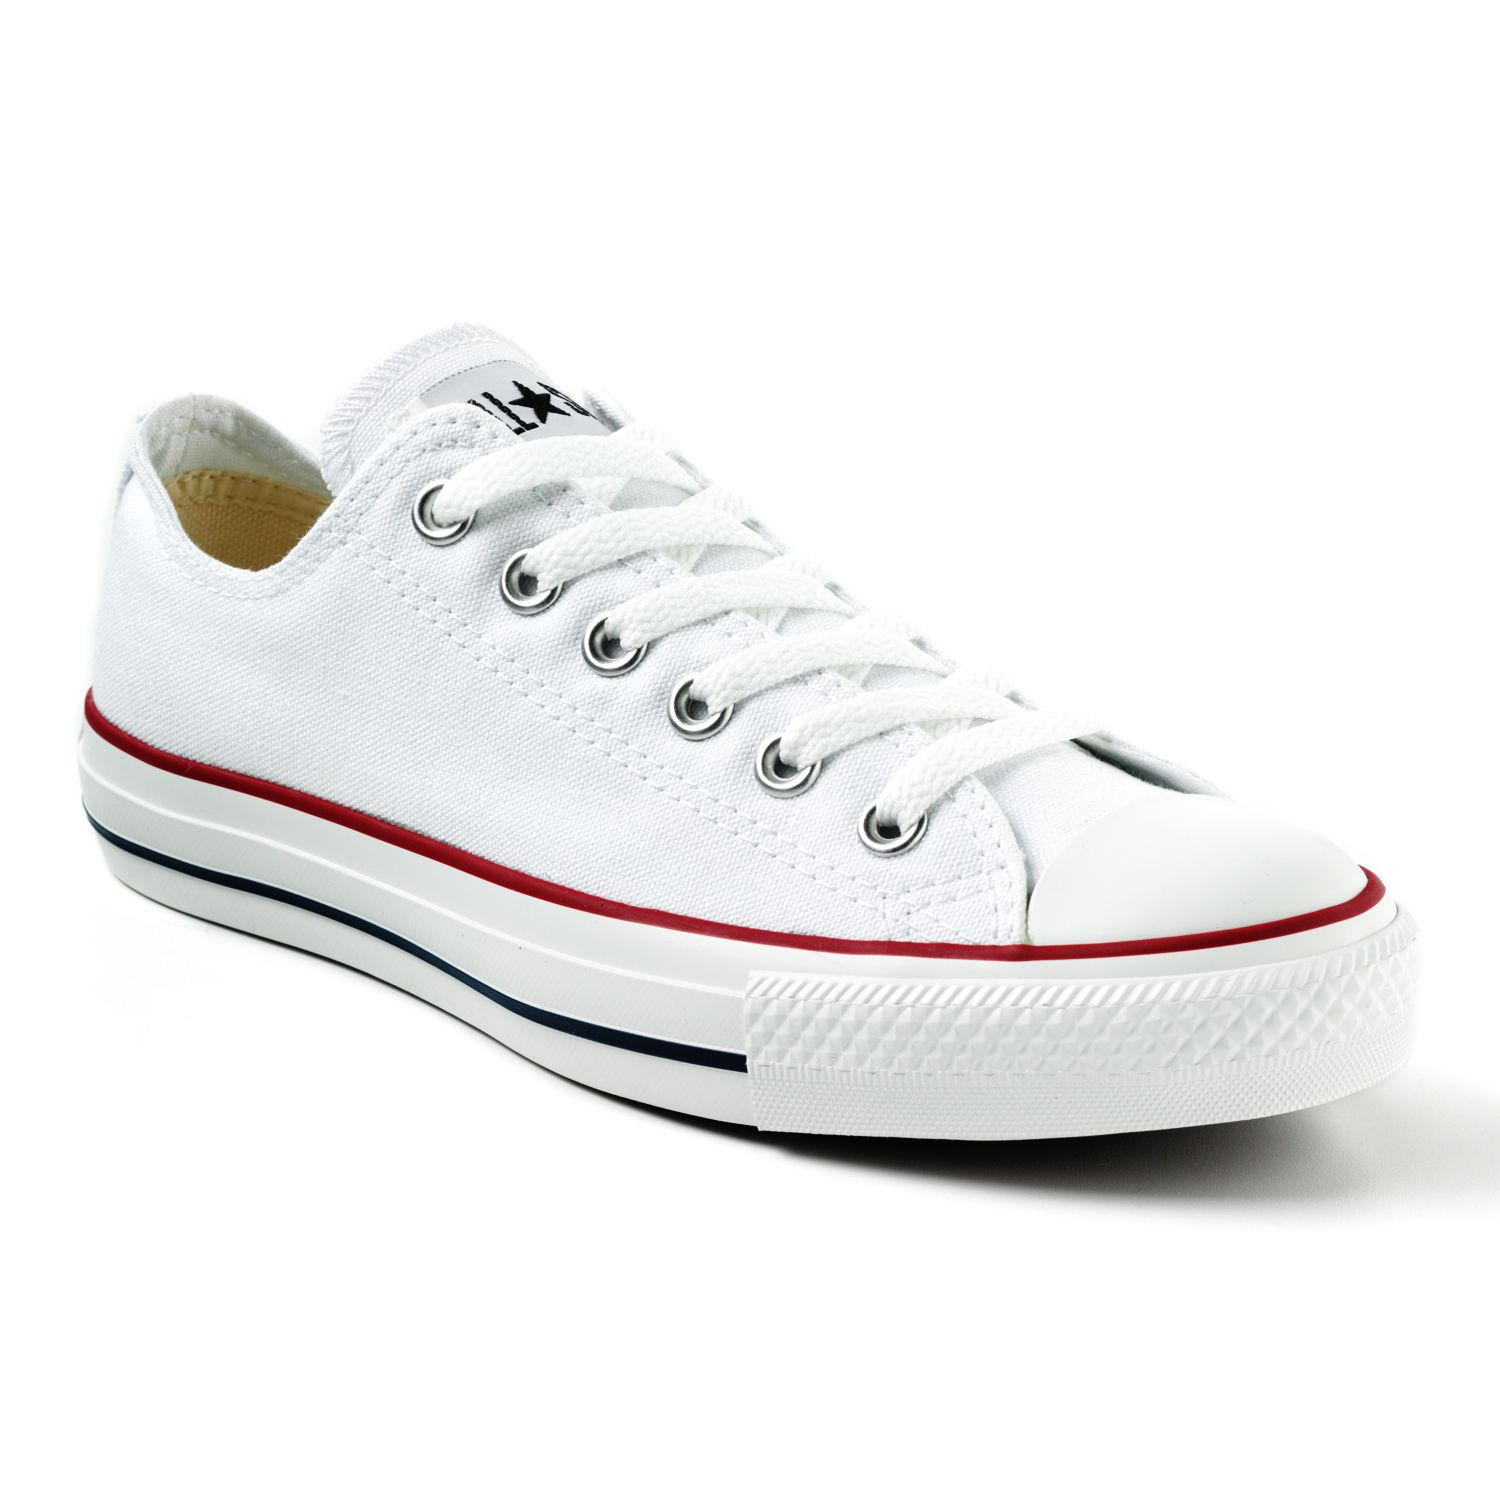 converse red canvas slip-on shoes